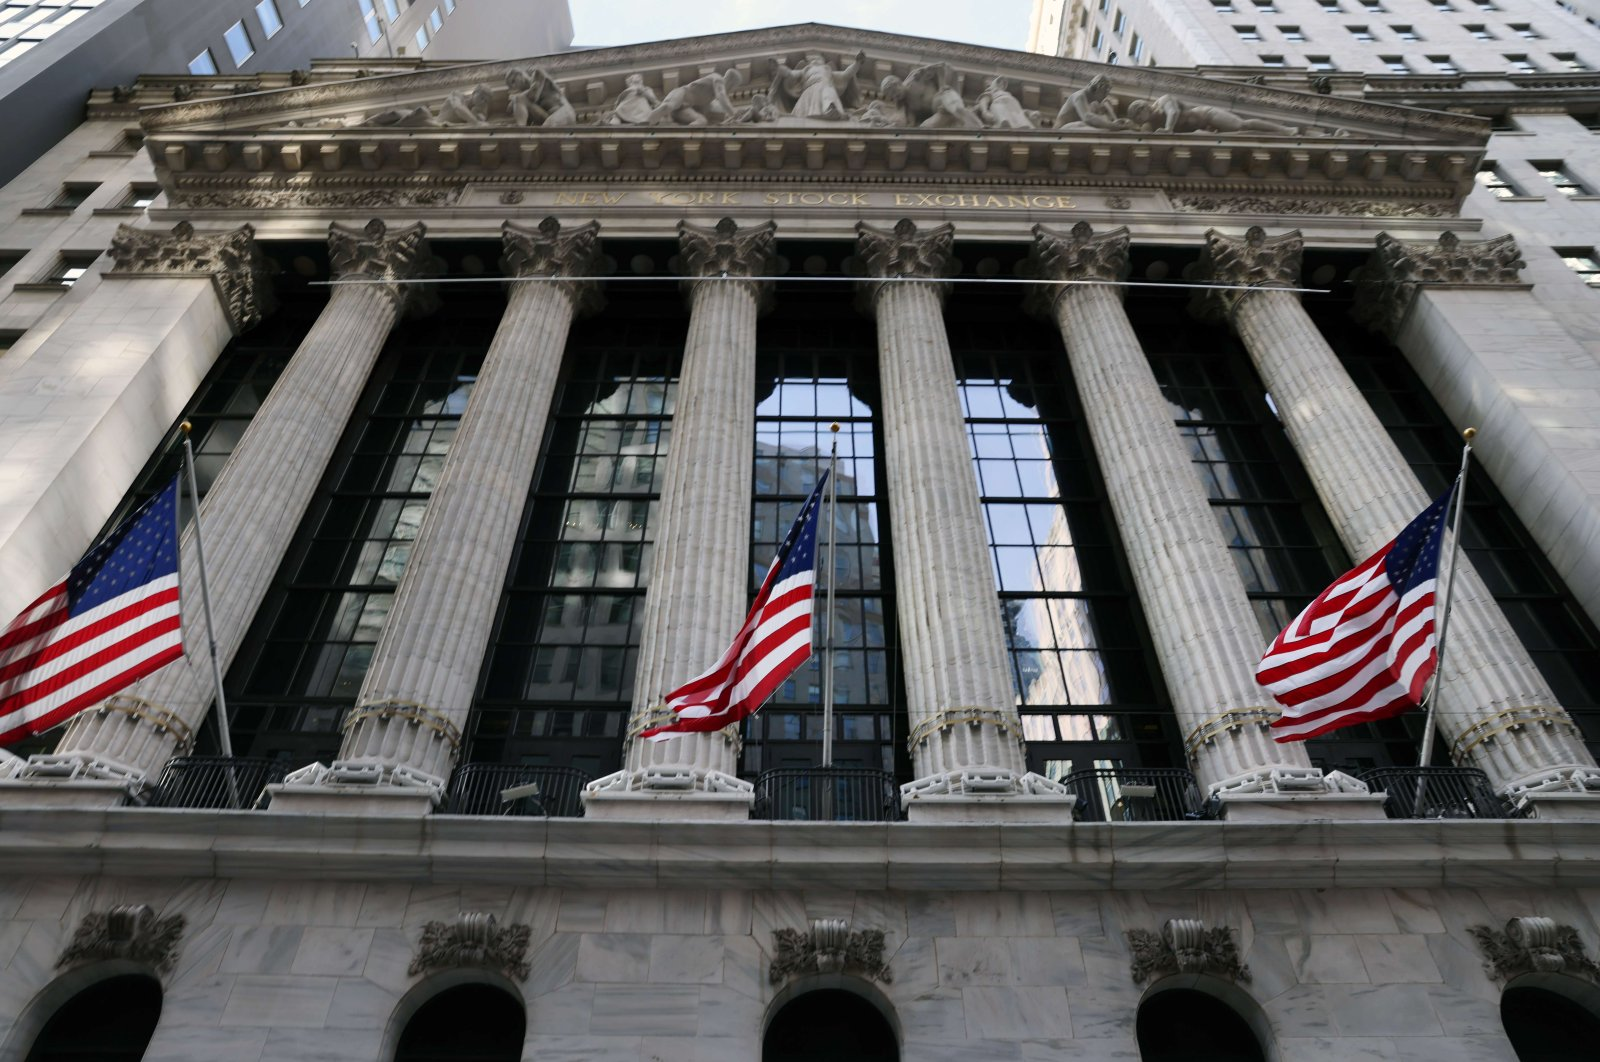 The New York Stock Exchange (NYSE) in the Financial District in Manhattan, New York on Jan. 28, 2021. (Getty Images/AFP Photo)